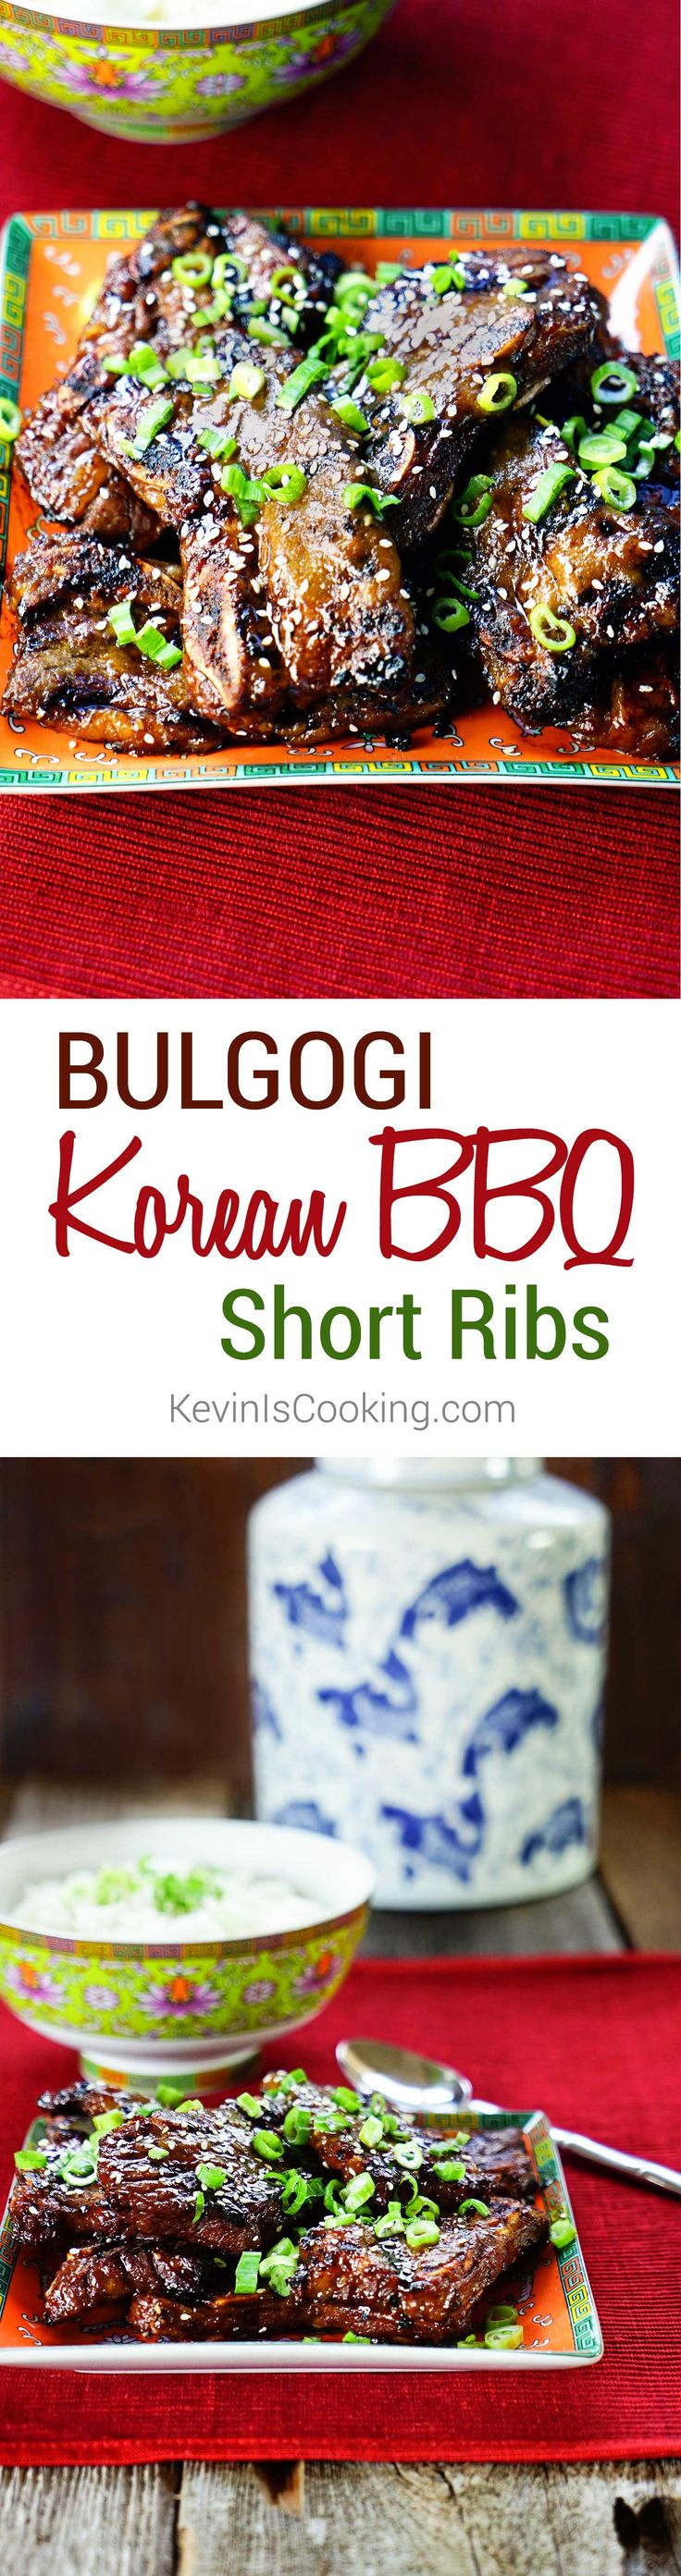 Bulgogi Korean BBQ Short Ribs. www.keviniscooking.com